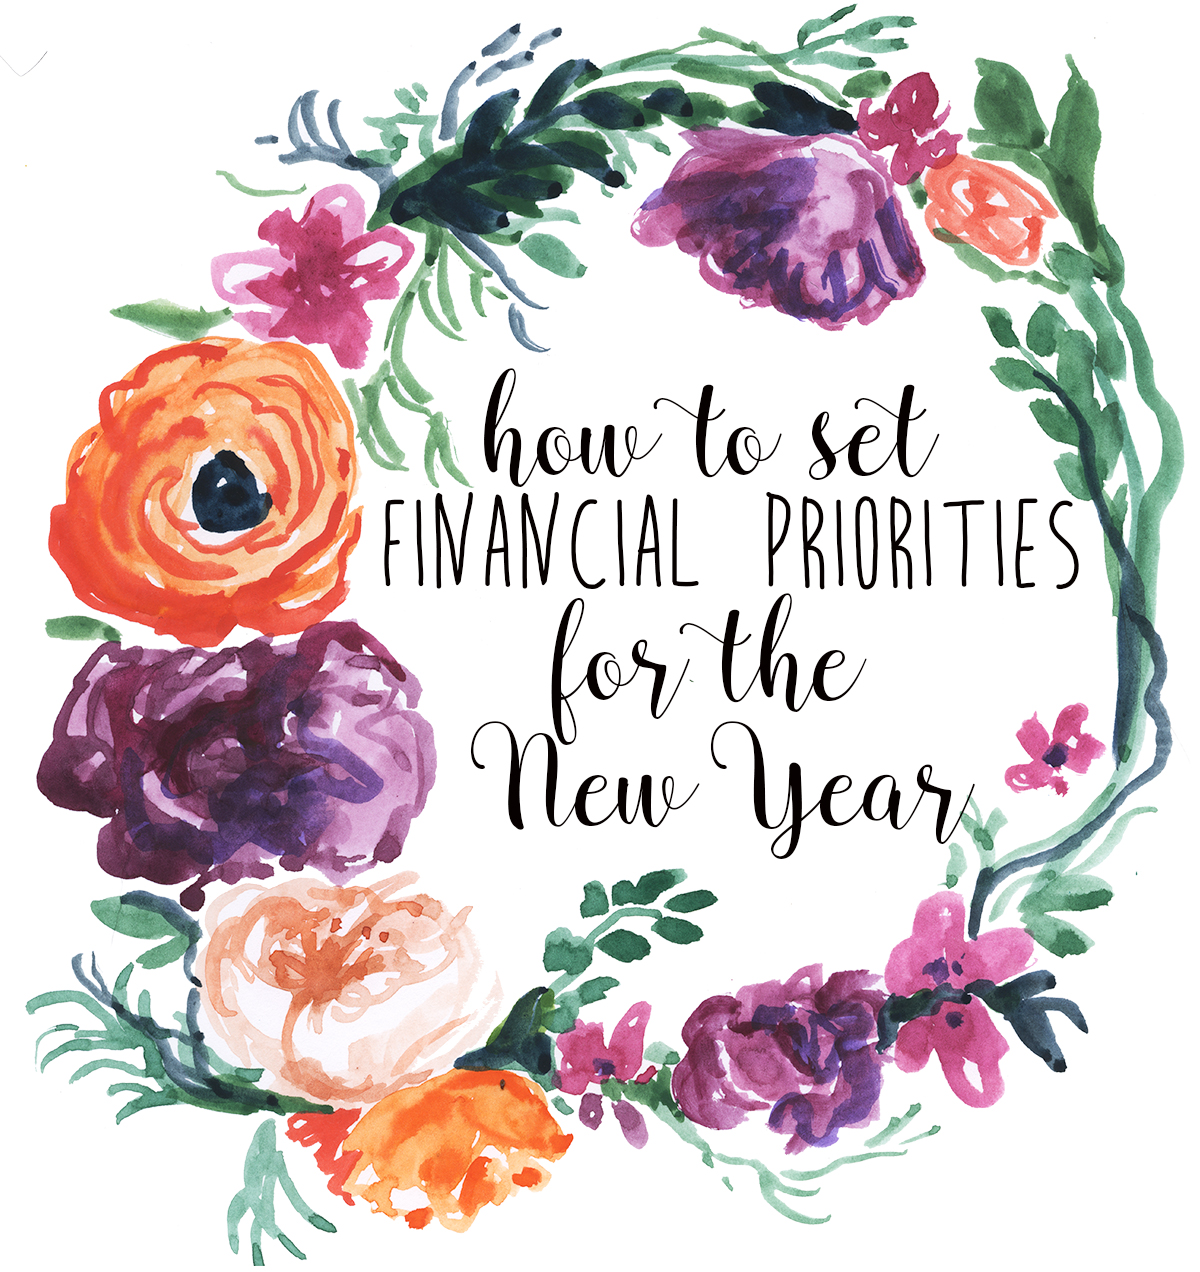 How to set financial priorities for the new year